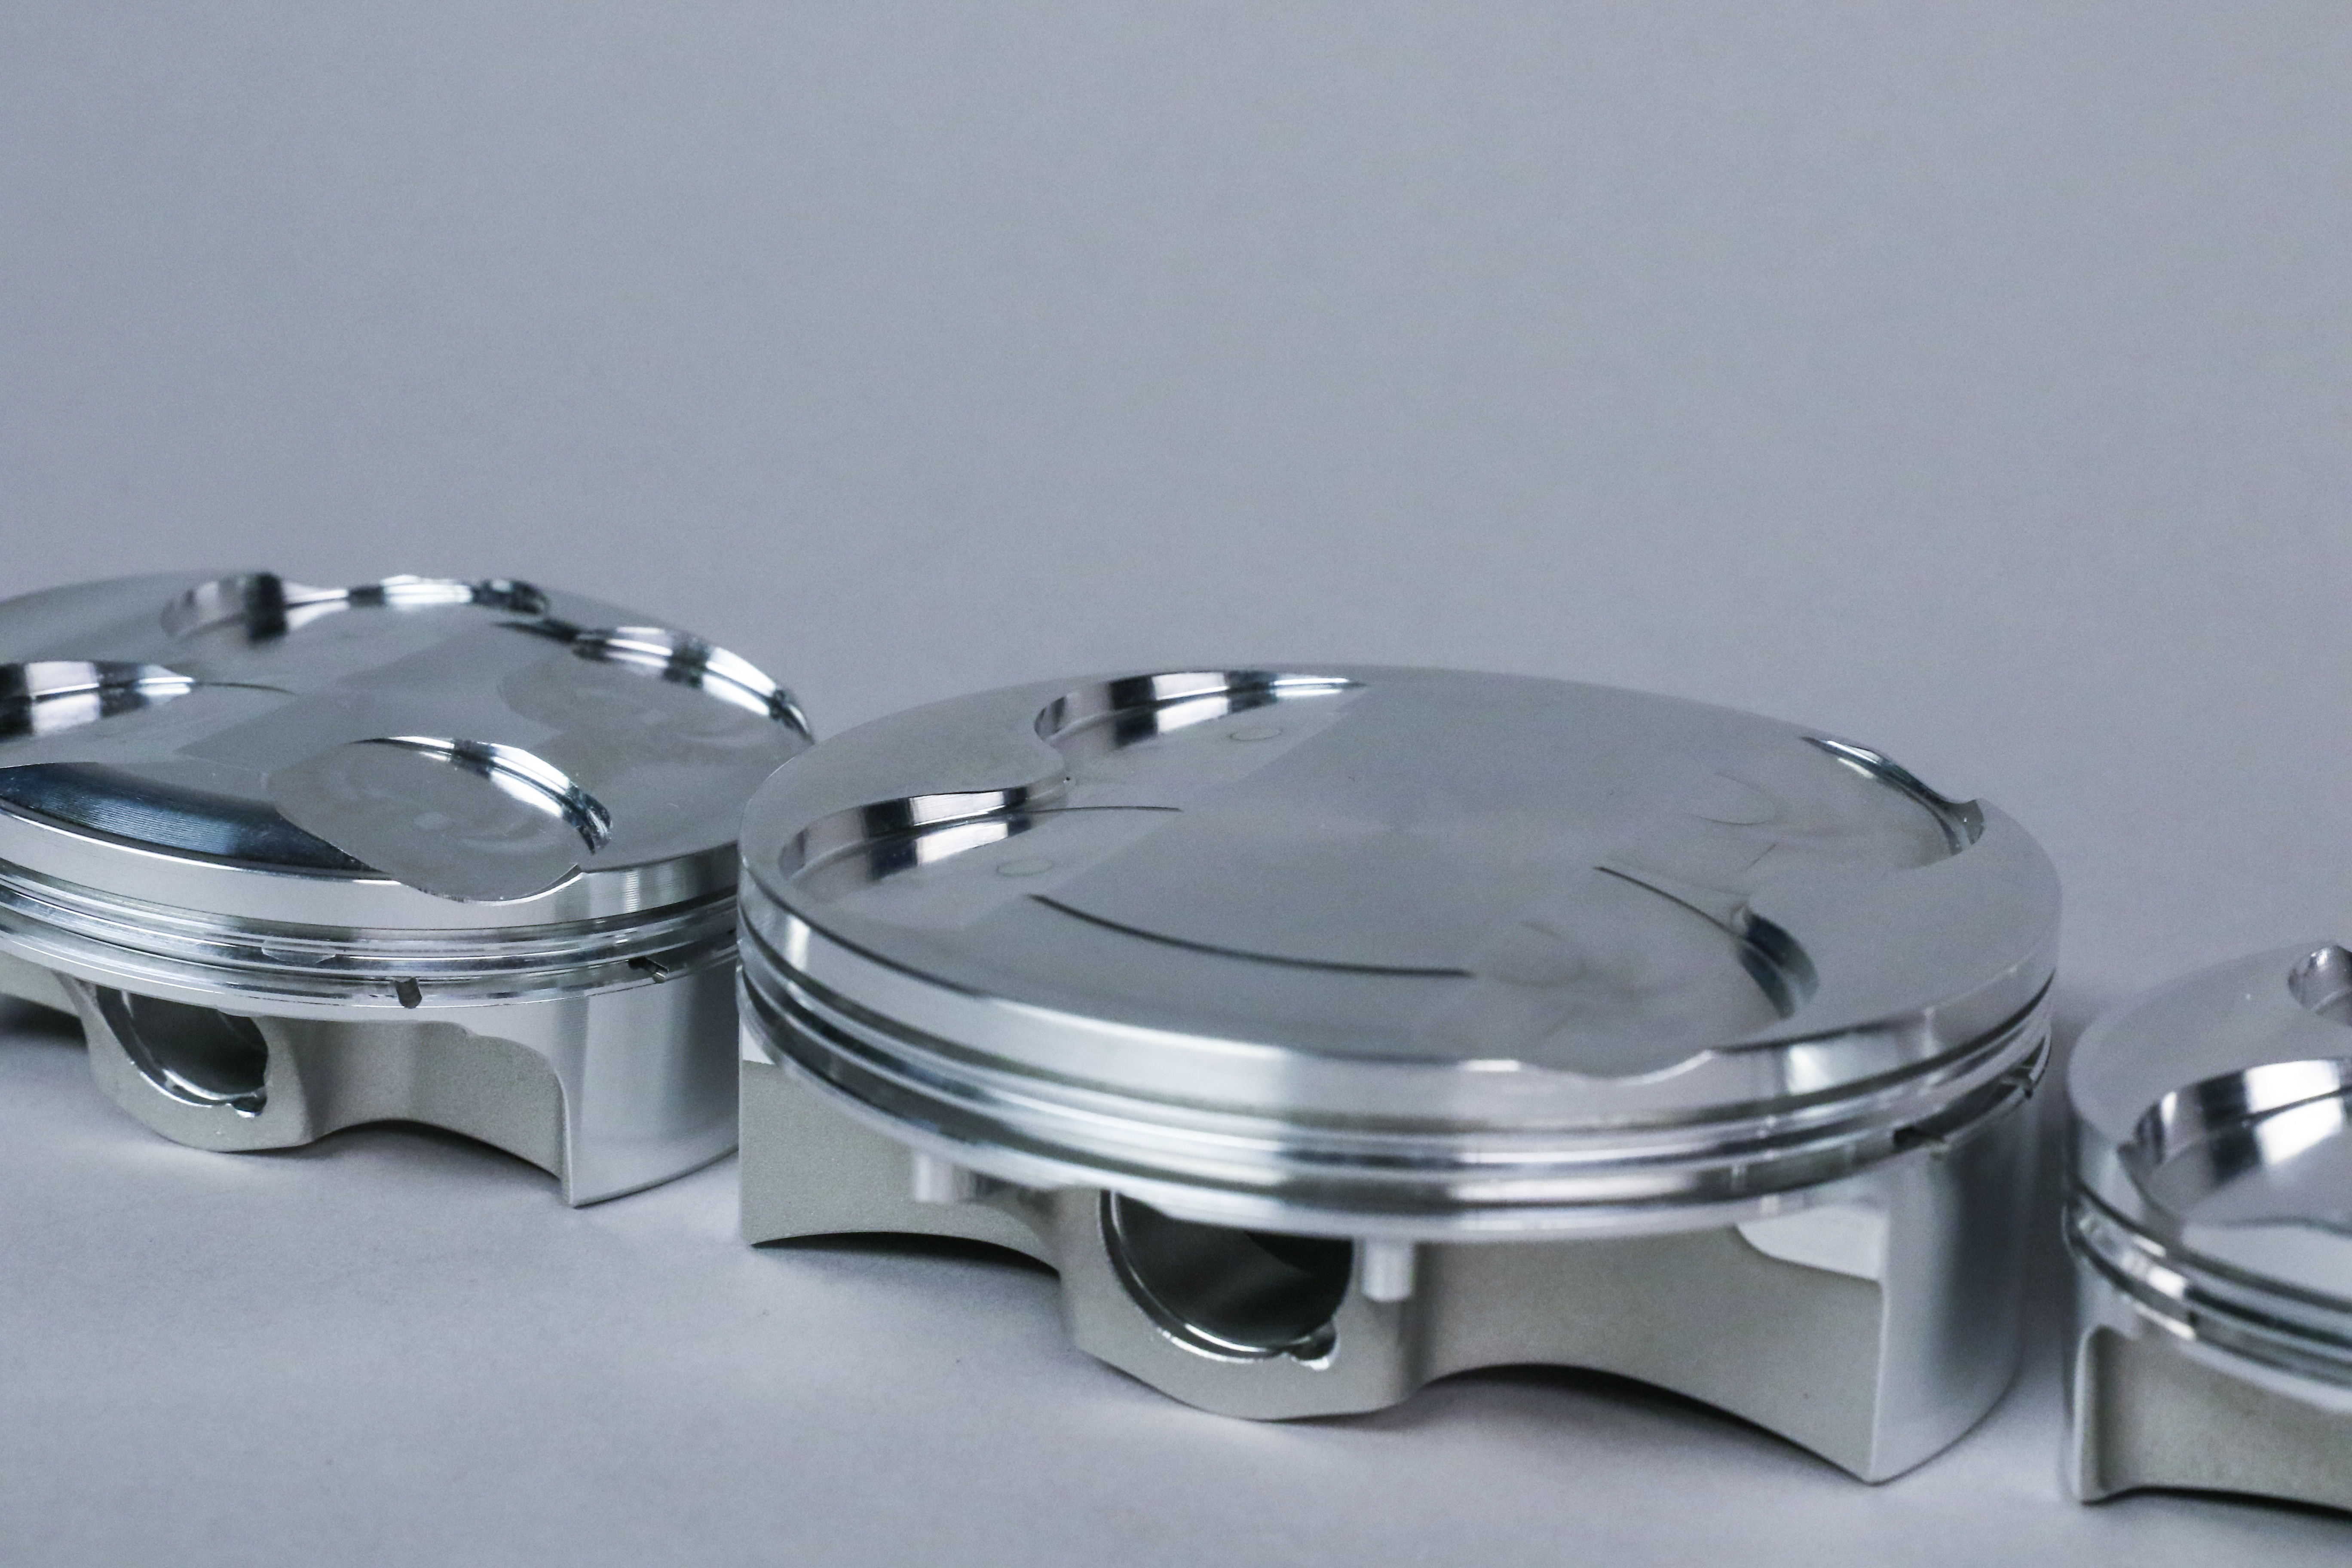 Pro Series Pistons An Upgrade For Your New Model Dirt Bike